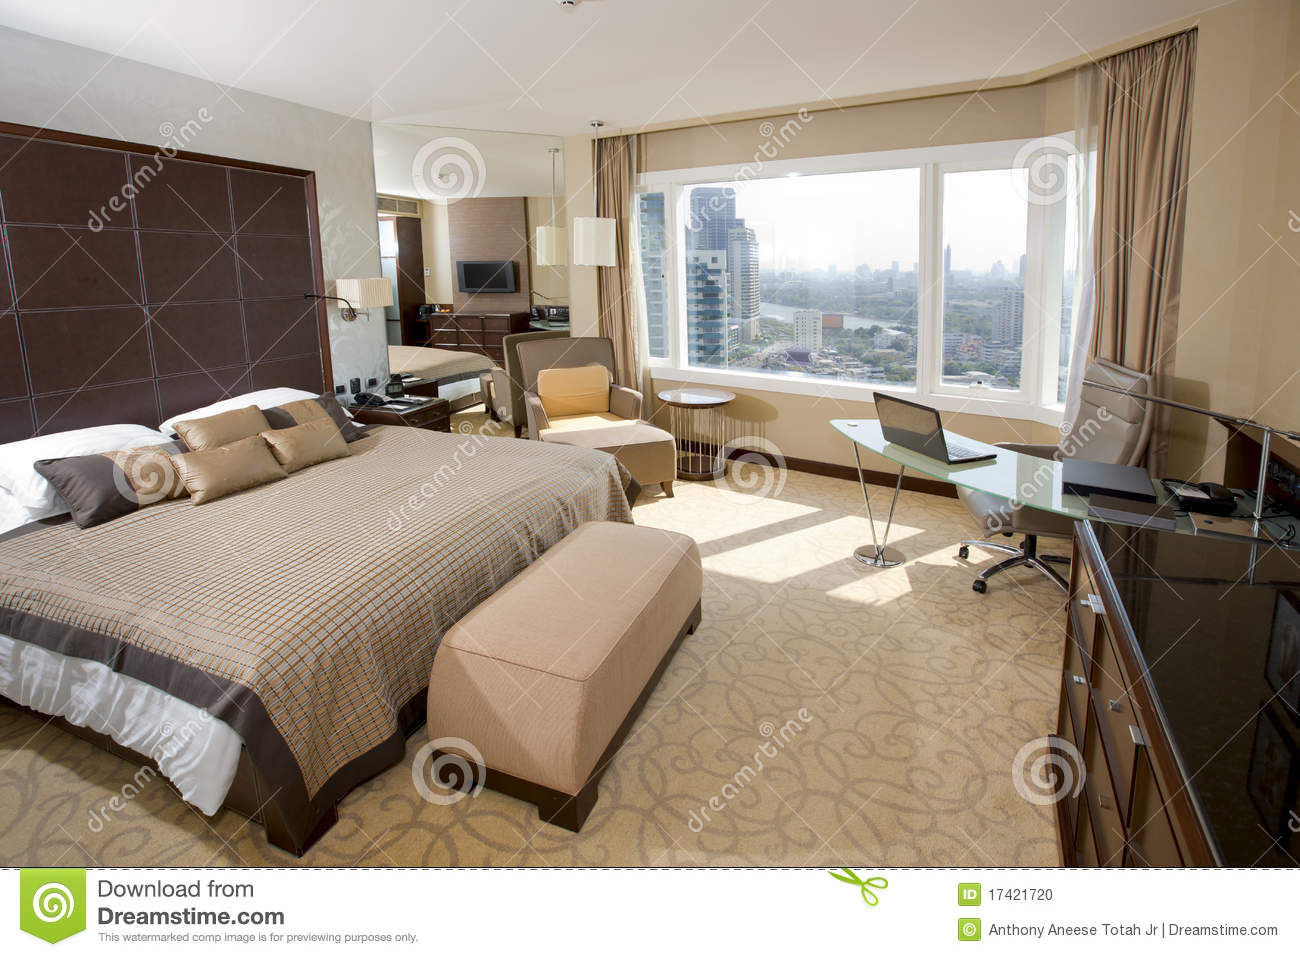 Idee Salle De Bain En Pierre : Design of an interior of a modern upscale hotel room with office work